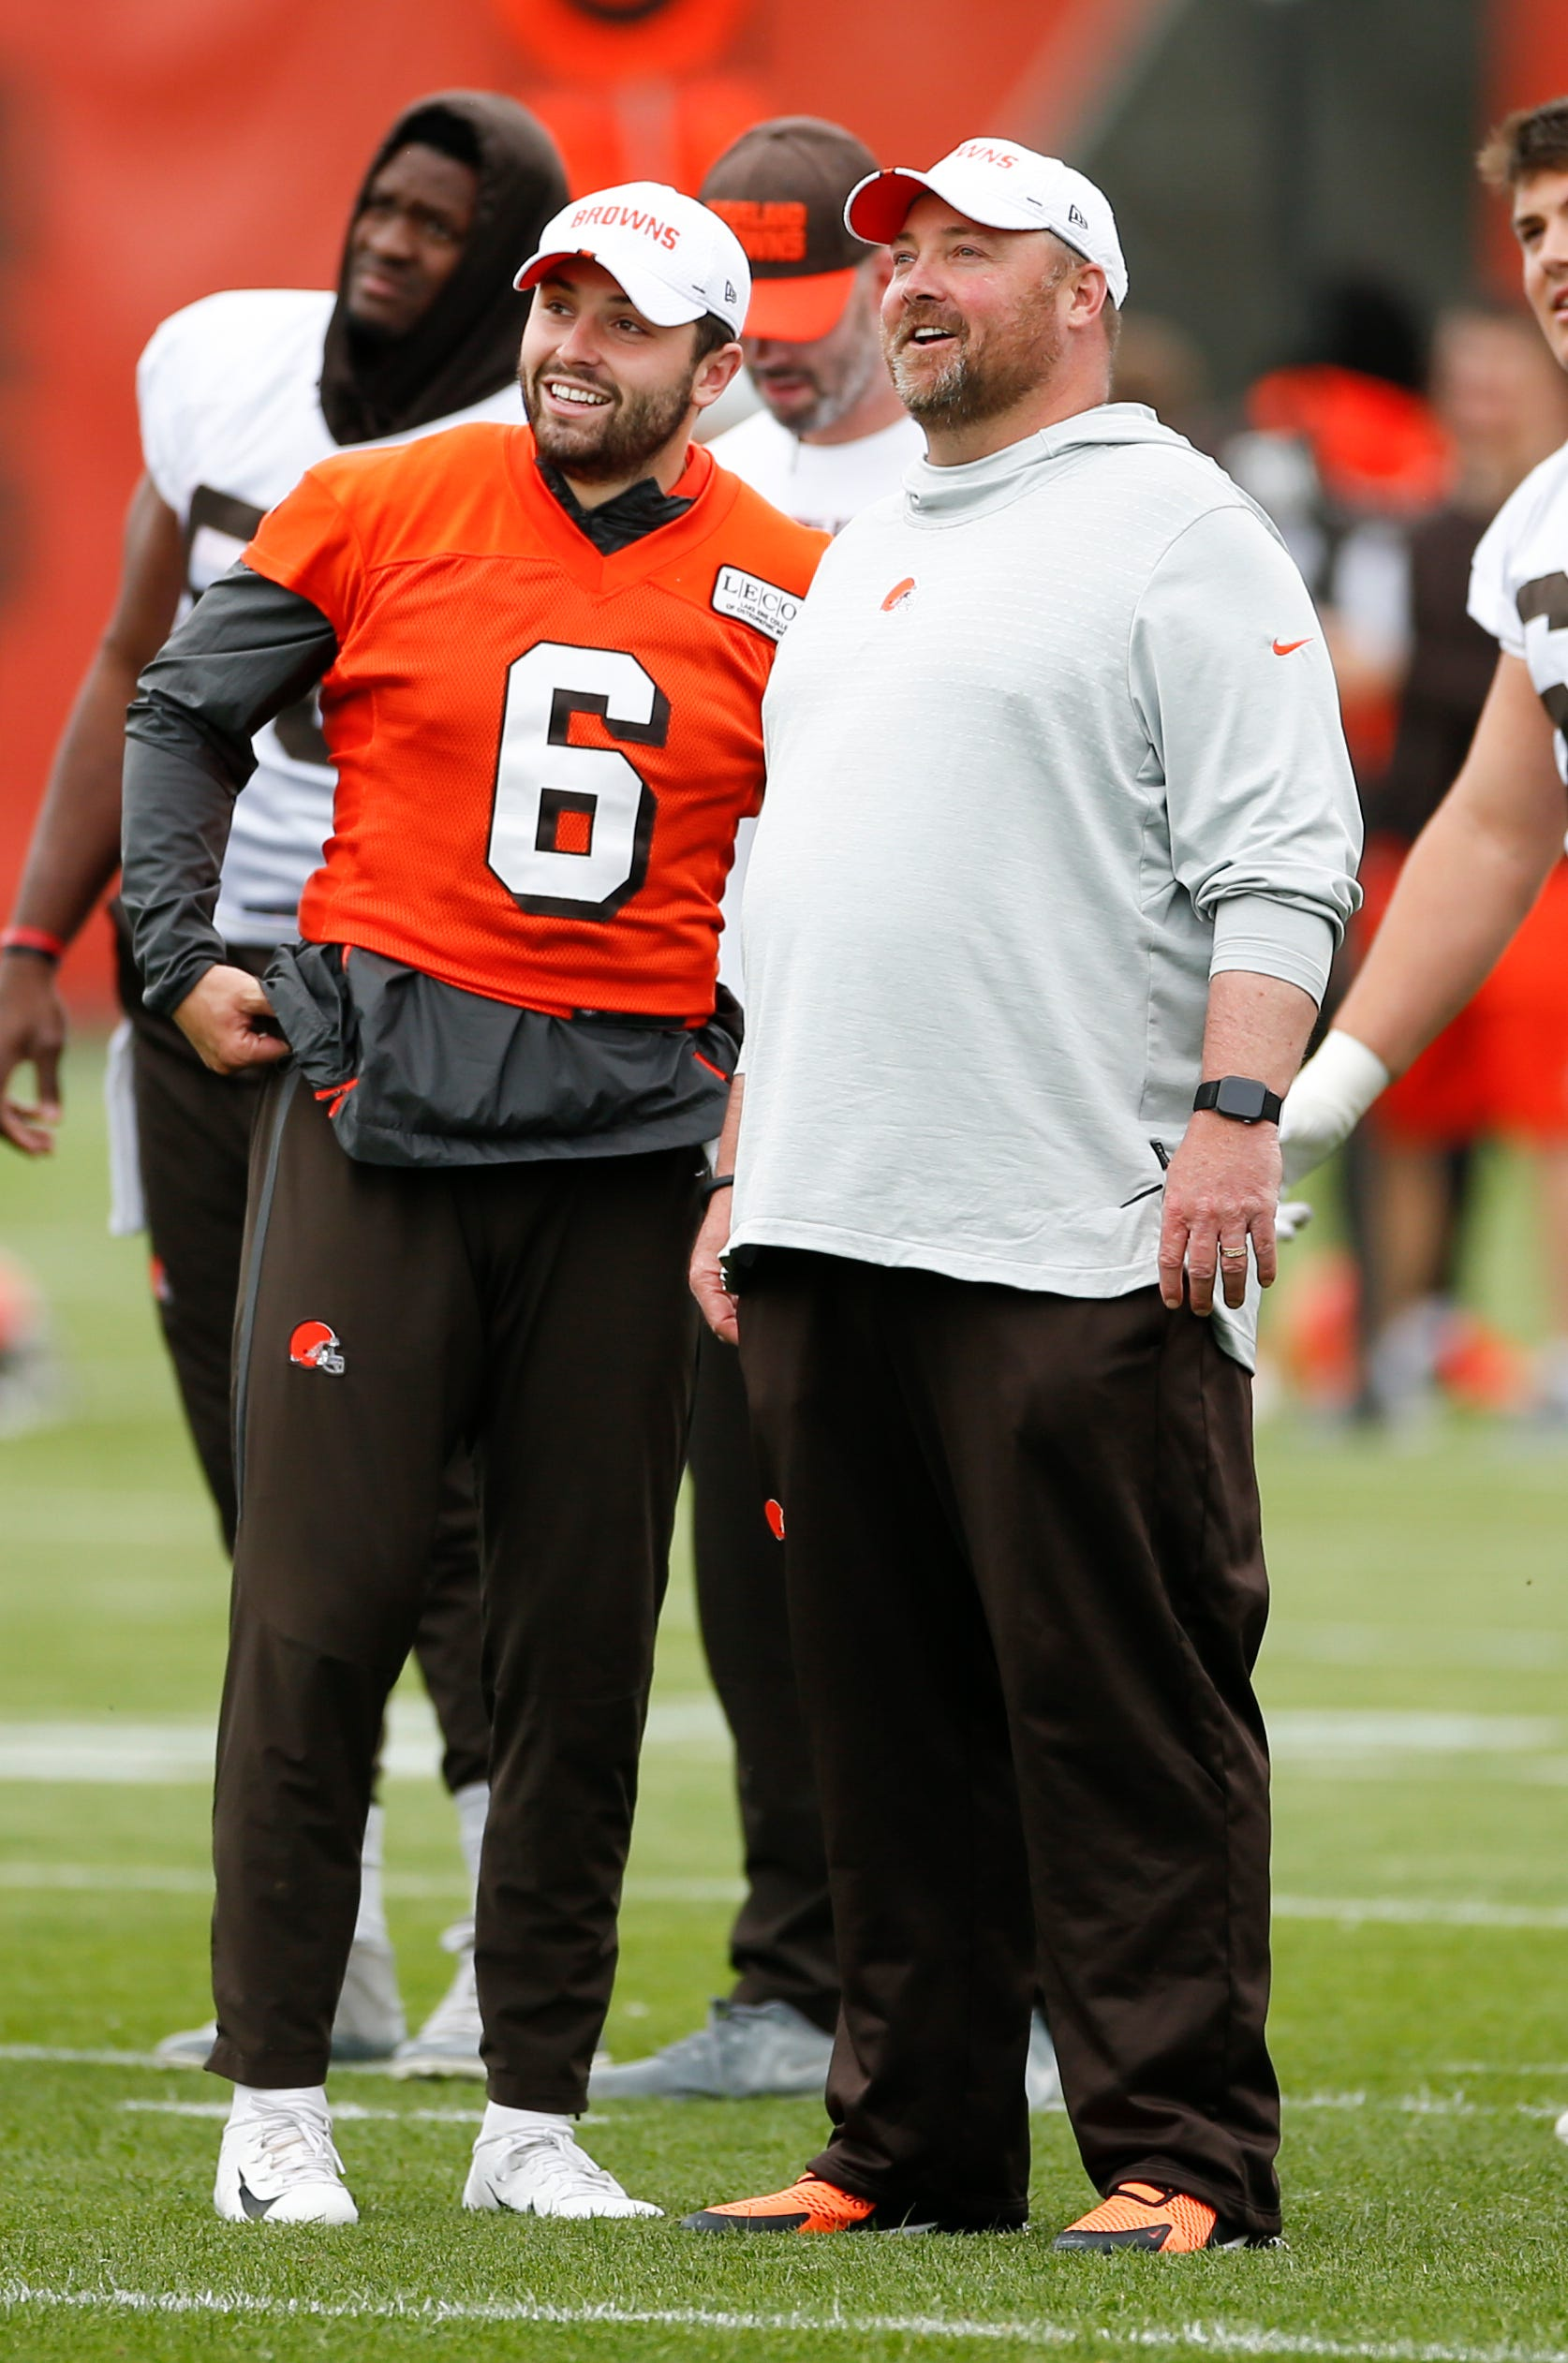 Opinion: Browns banking on Freddie Kitchens. Is rookie coach ready to handle egos, expectations?